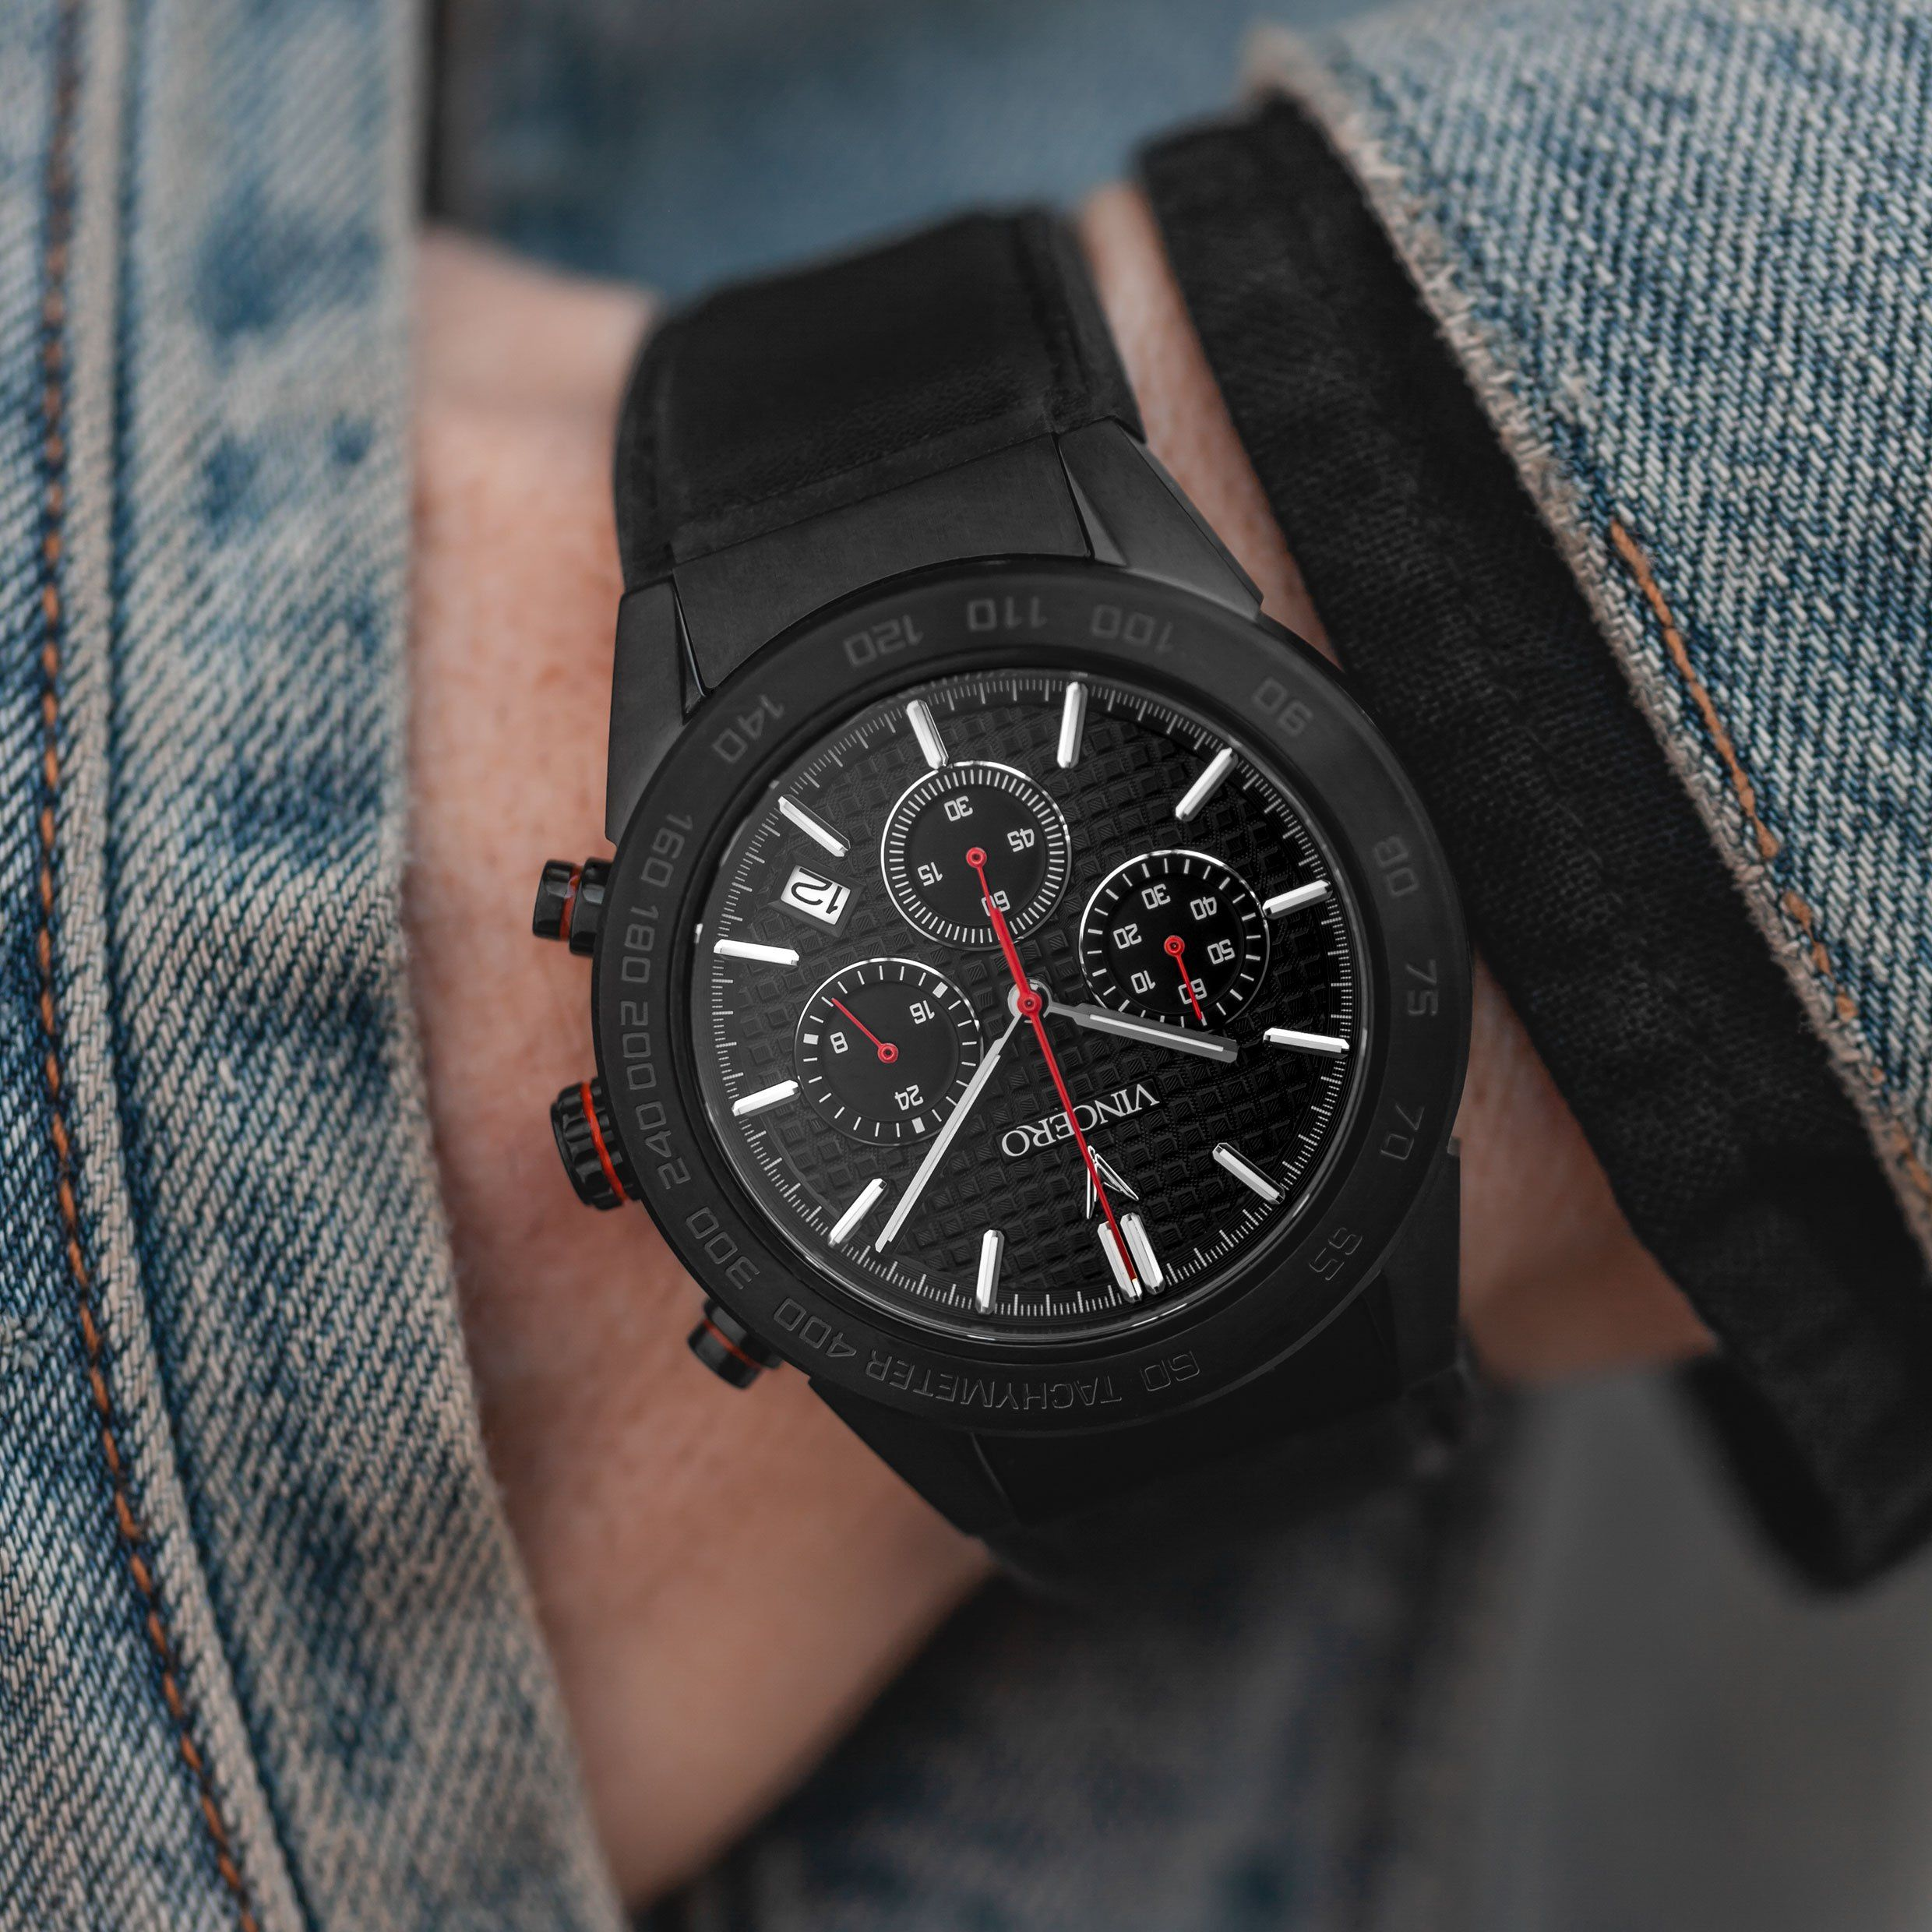 The Rogue Red Black Vincero Watches Black And Red Leather Watch Bands Watch Bands